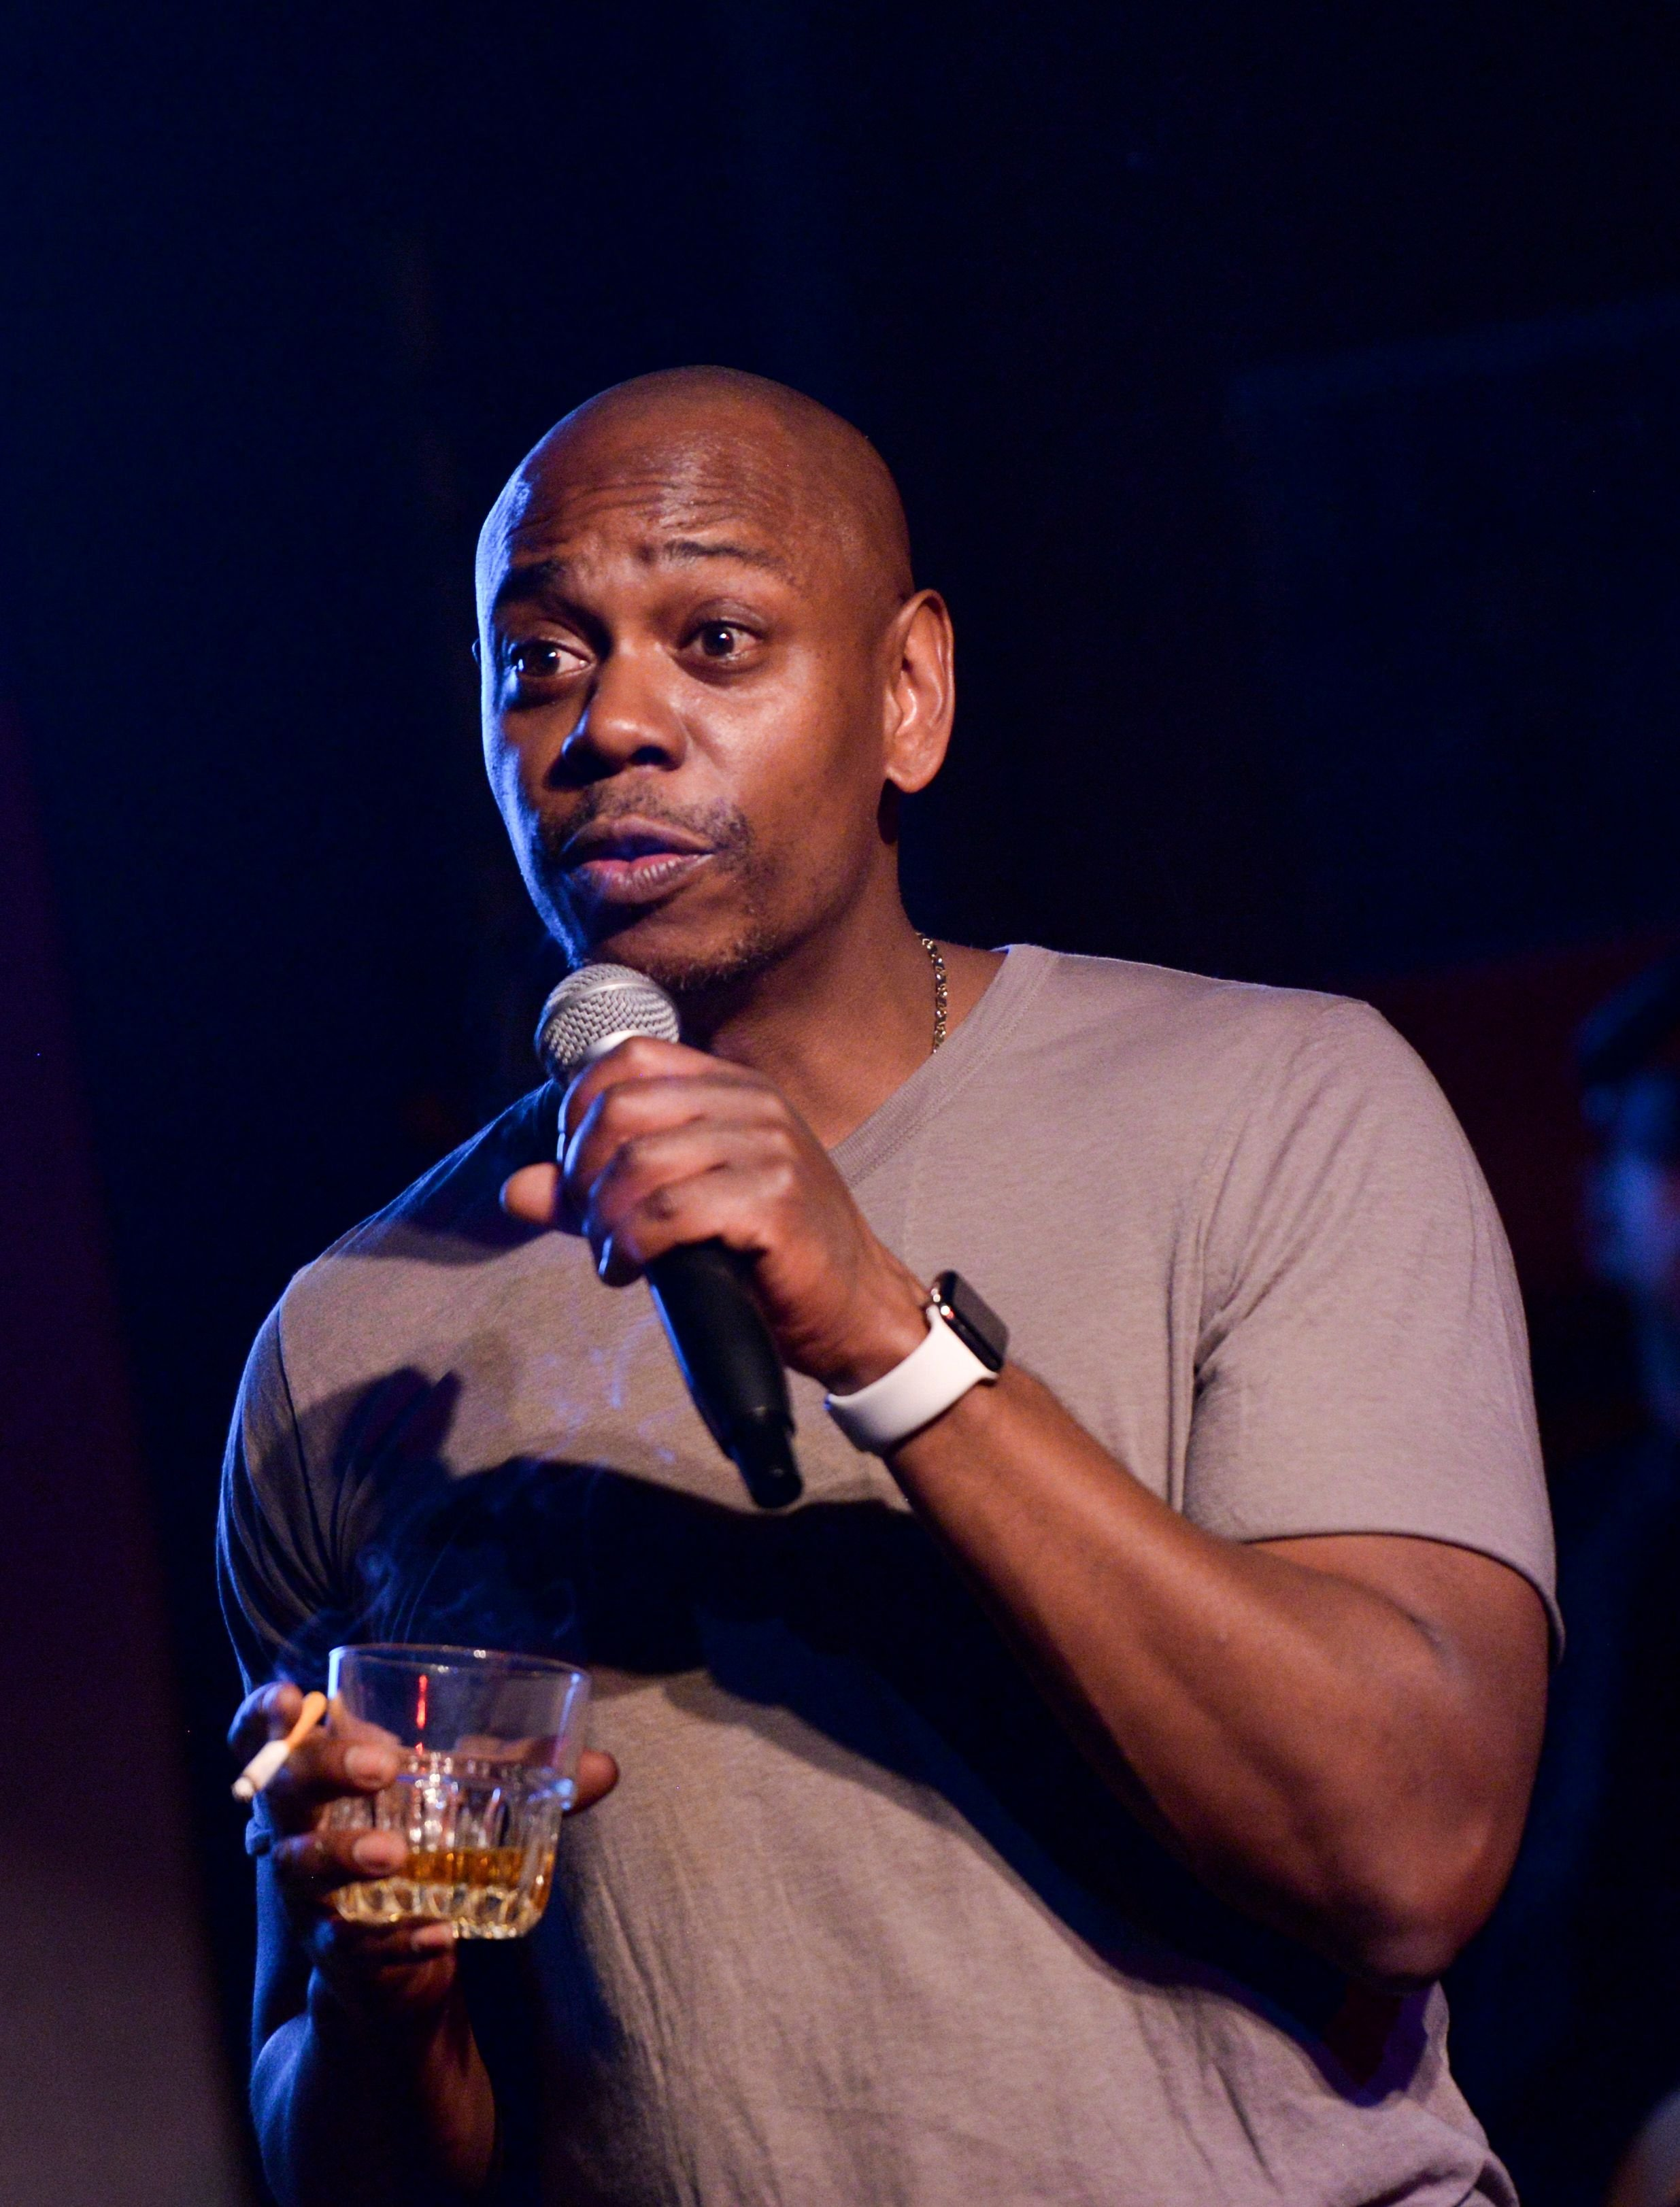 Dave Chappelle performs at The Imagine Ball honoring Serena Williams and benefitting Imagine LA on September 23, 2018 | Photo: Getty Images